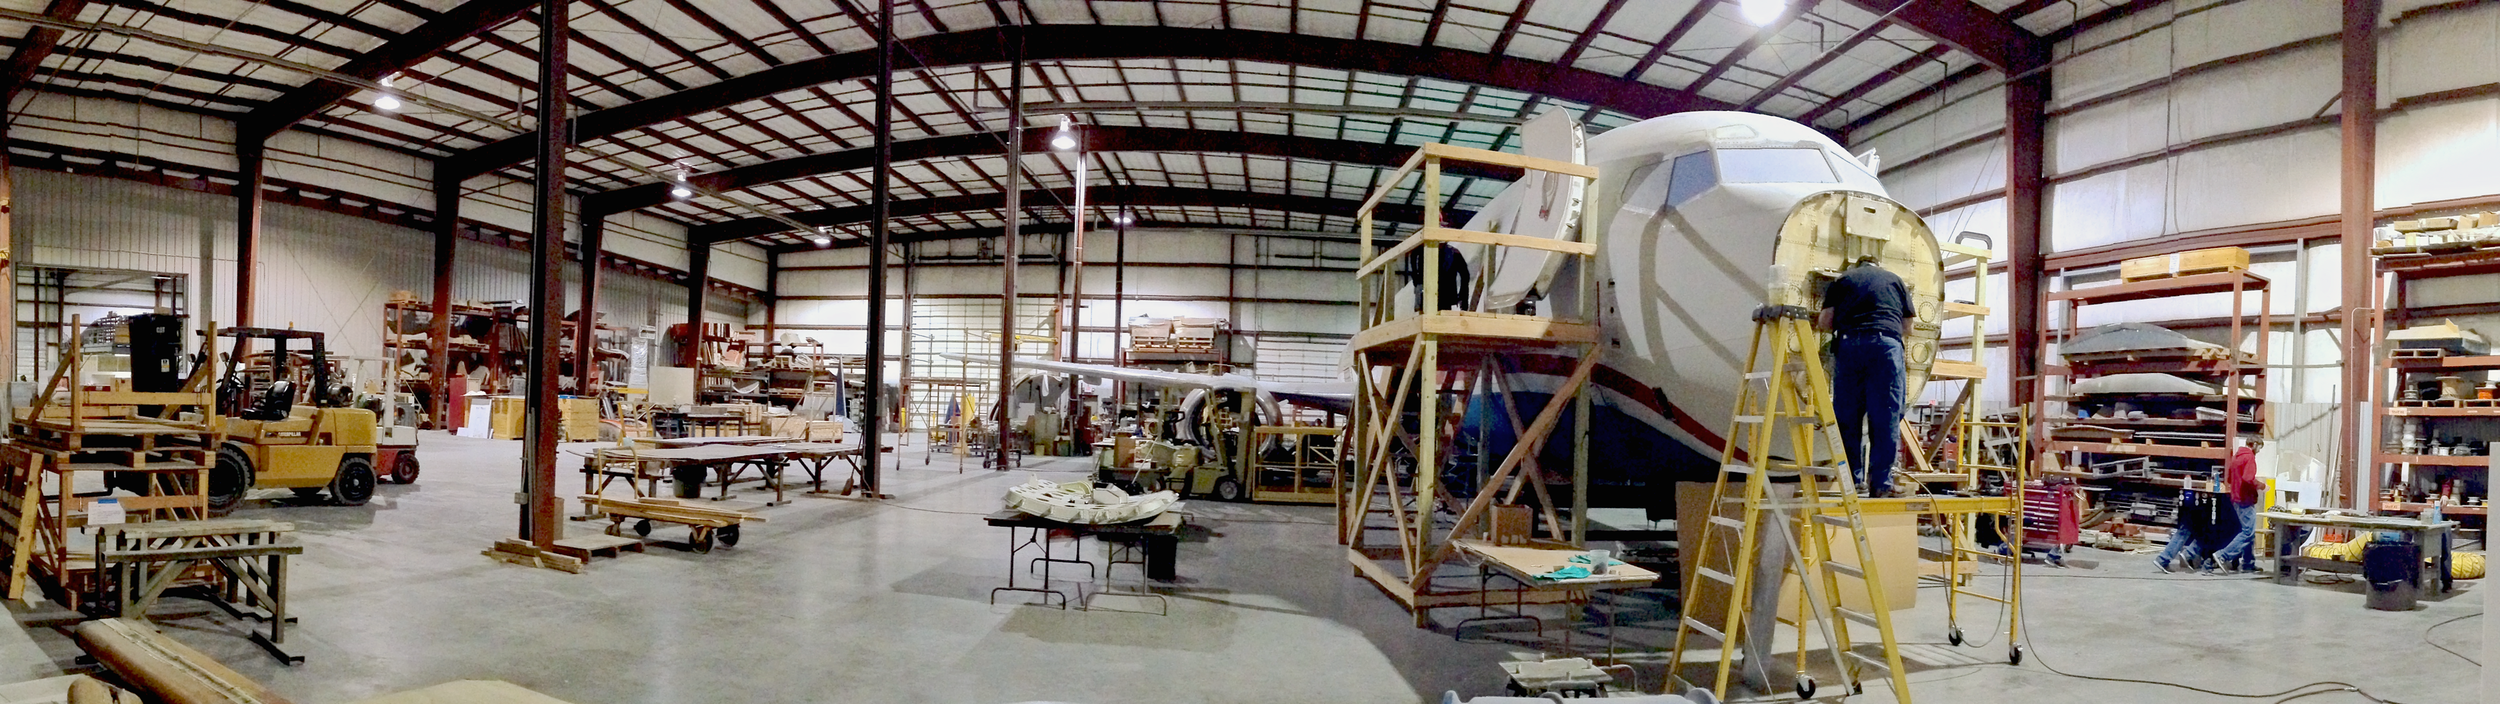 sm E Highbay Pano From S.png